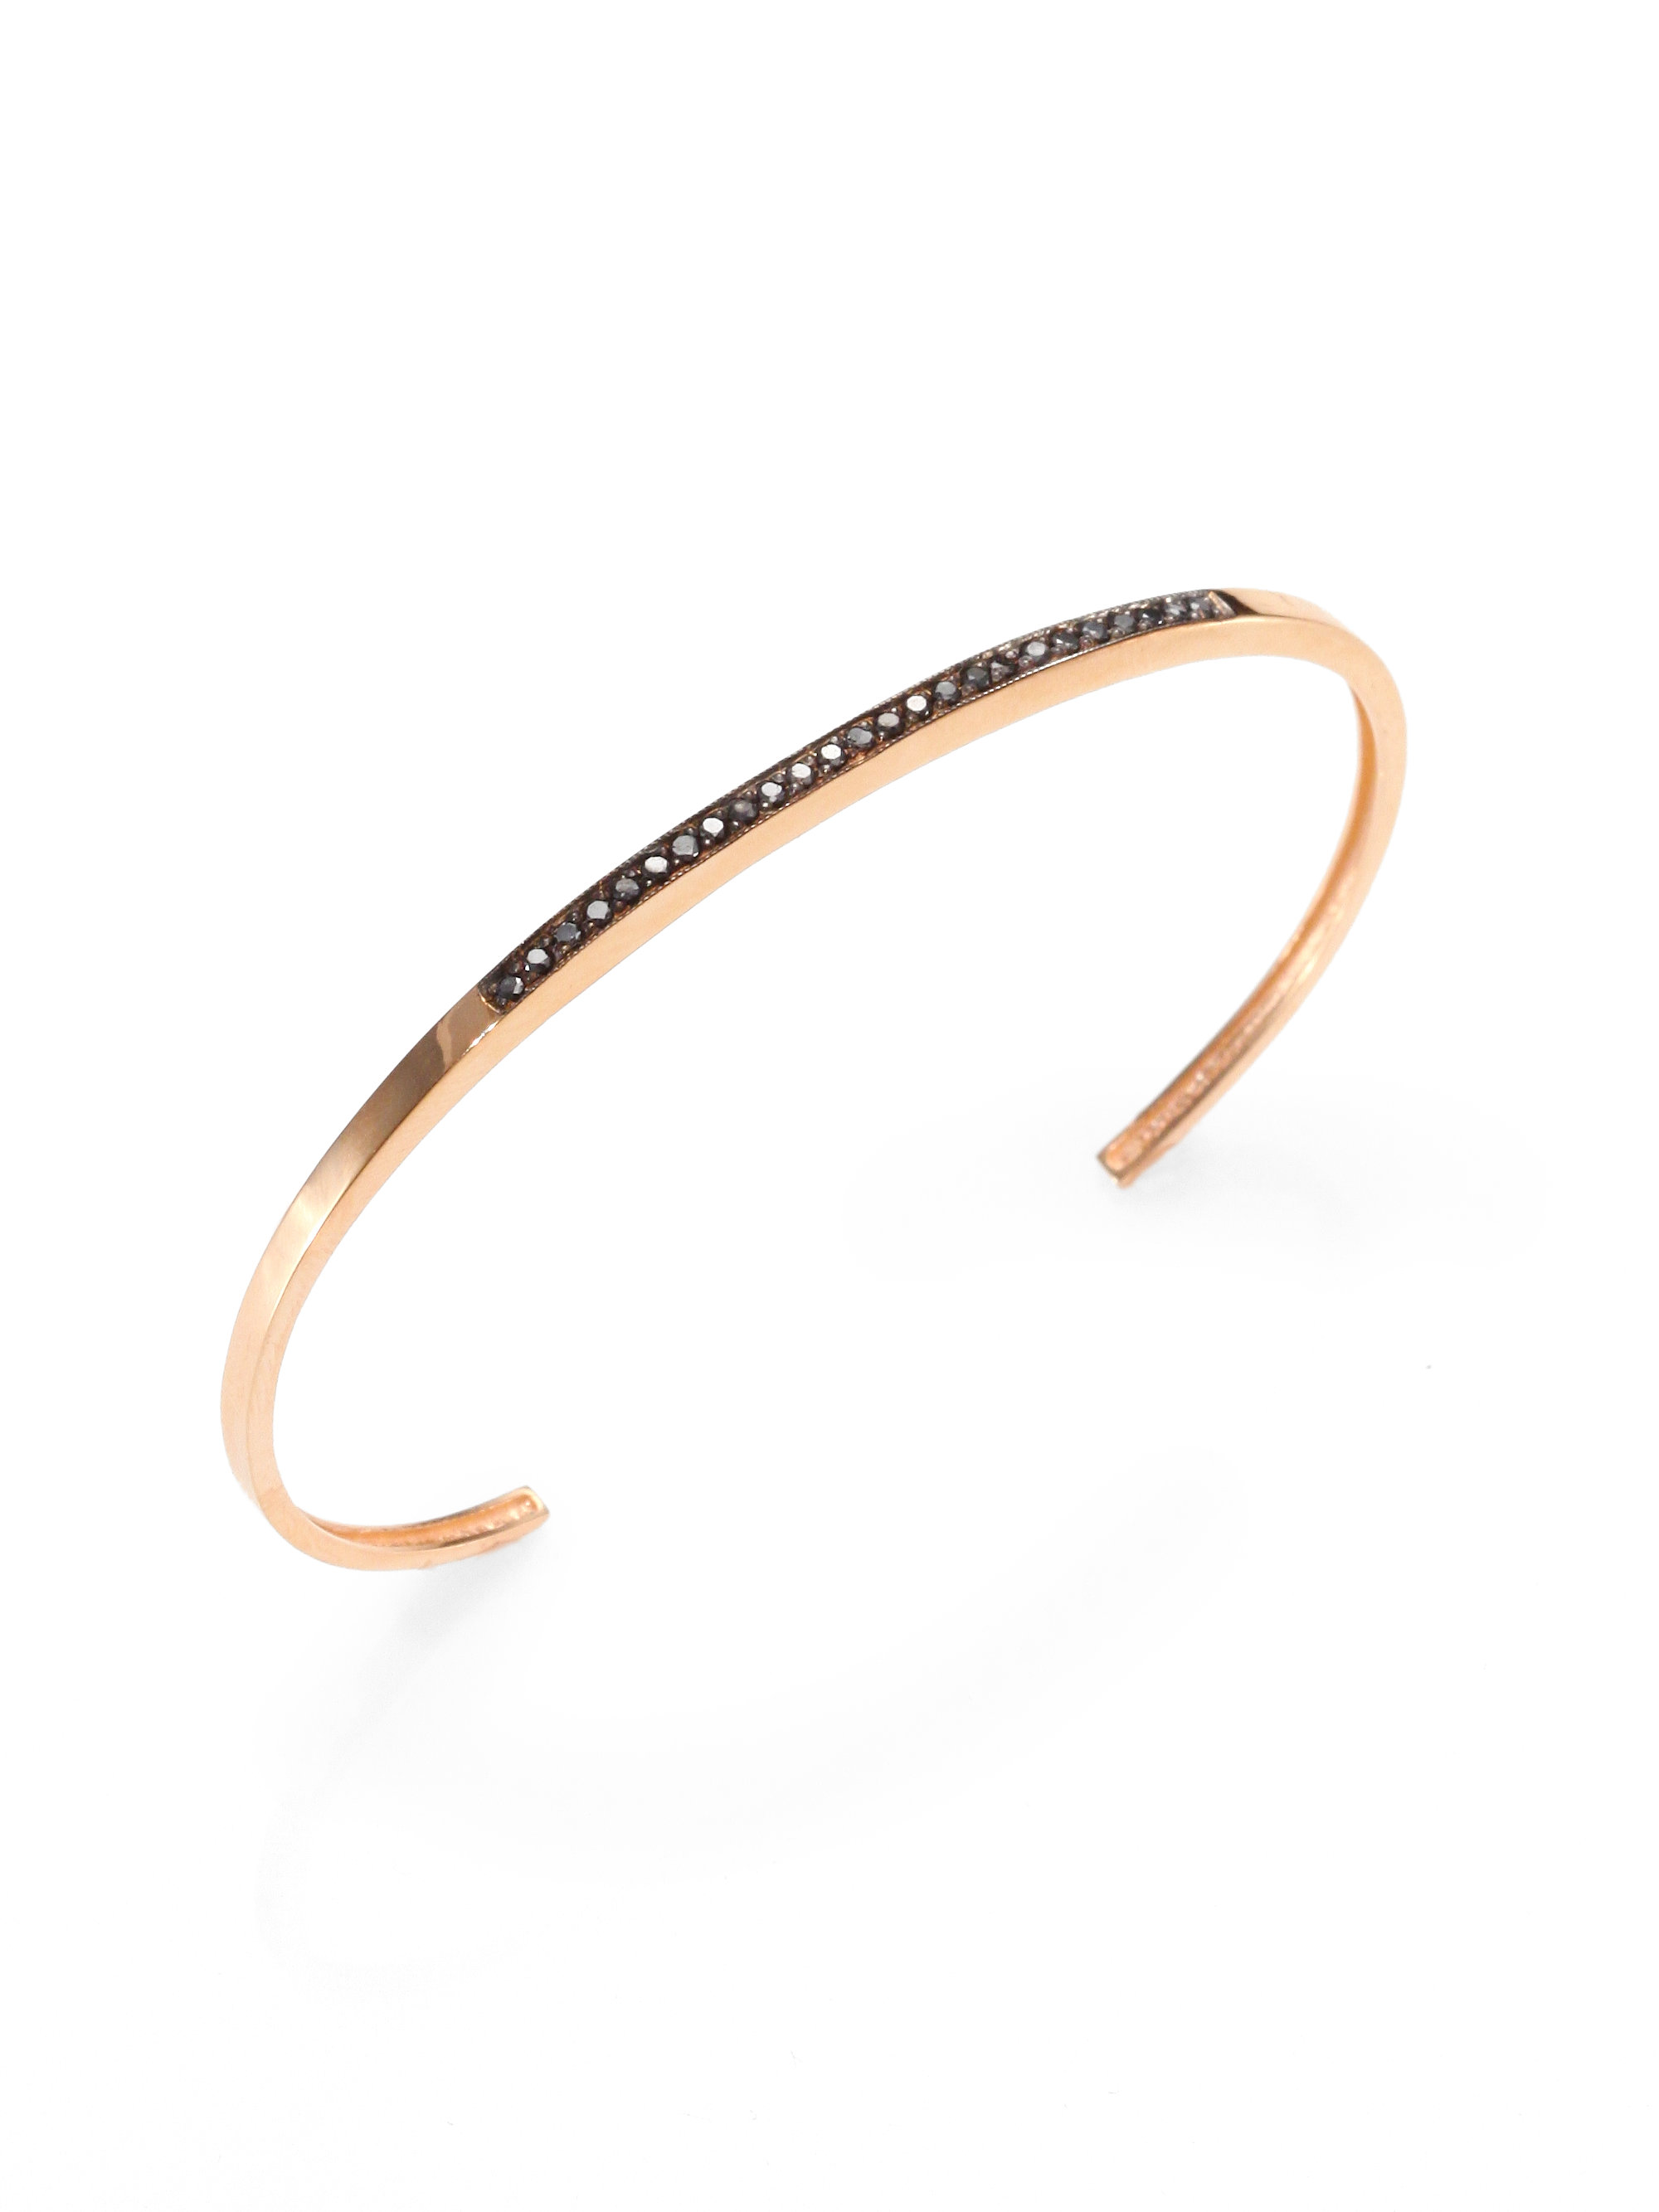 rose edit bangles karat bracelets bangle diamond gold bracelet